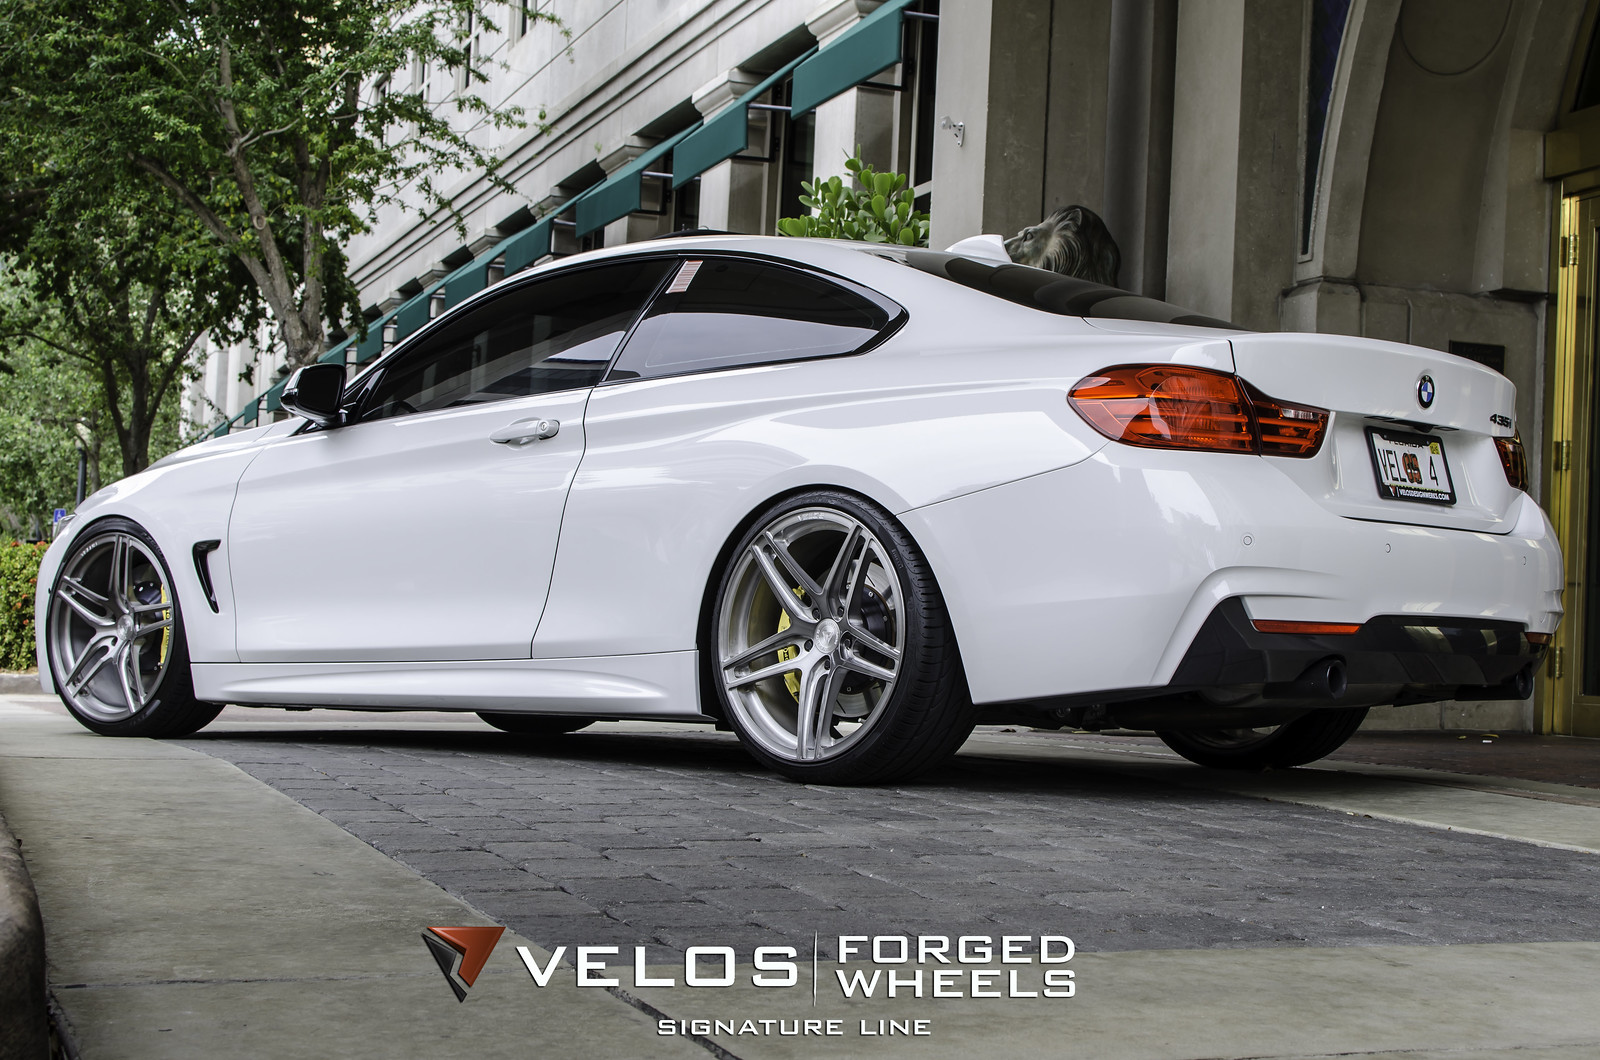 bmw series bmw 435i on velos designwerks s1 signature series forged wheels. Black Bedroom Furniture Sets. Home Design Ideas